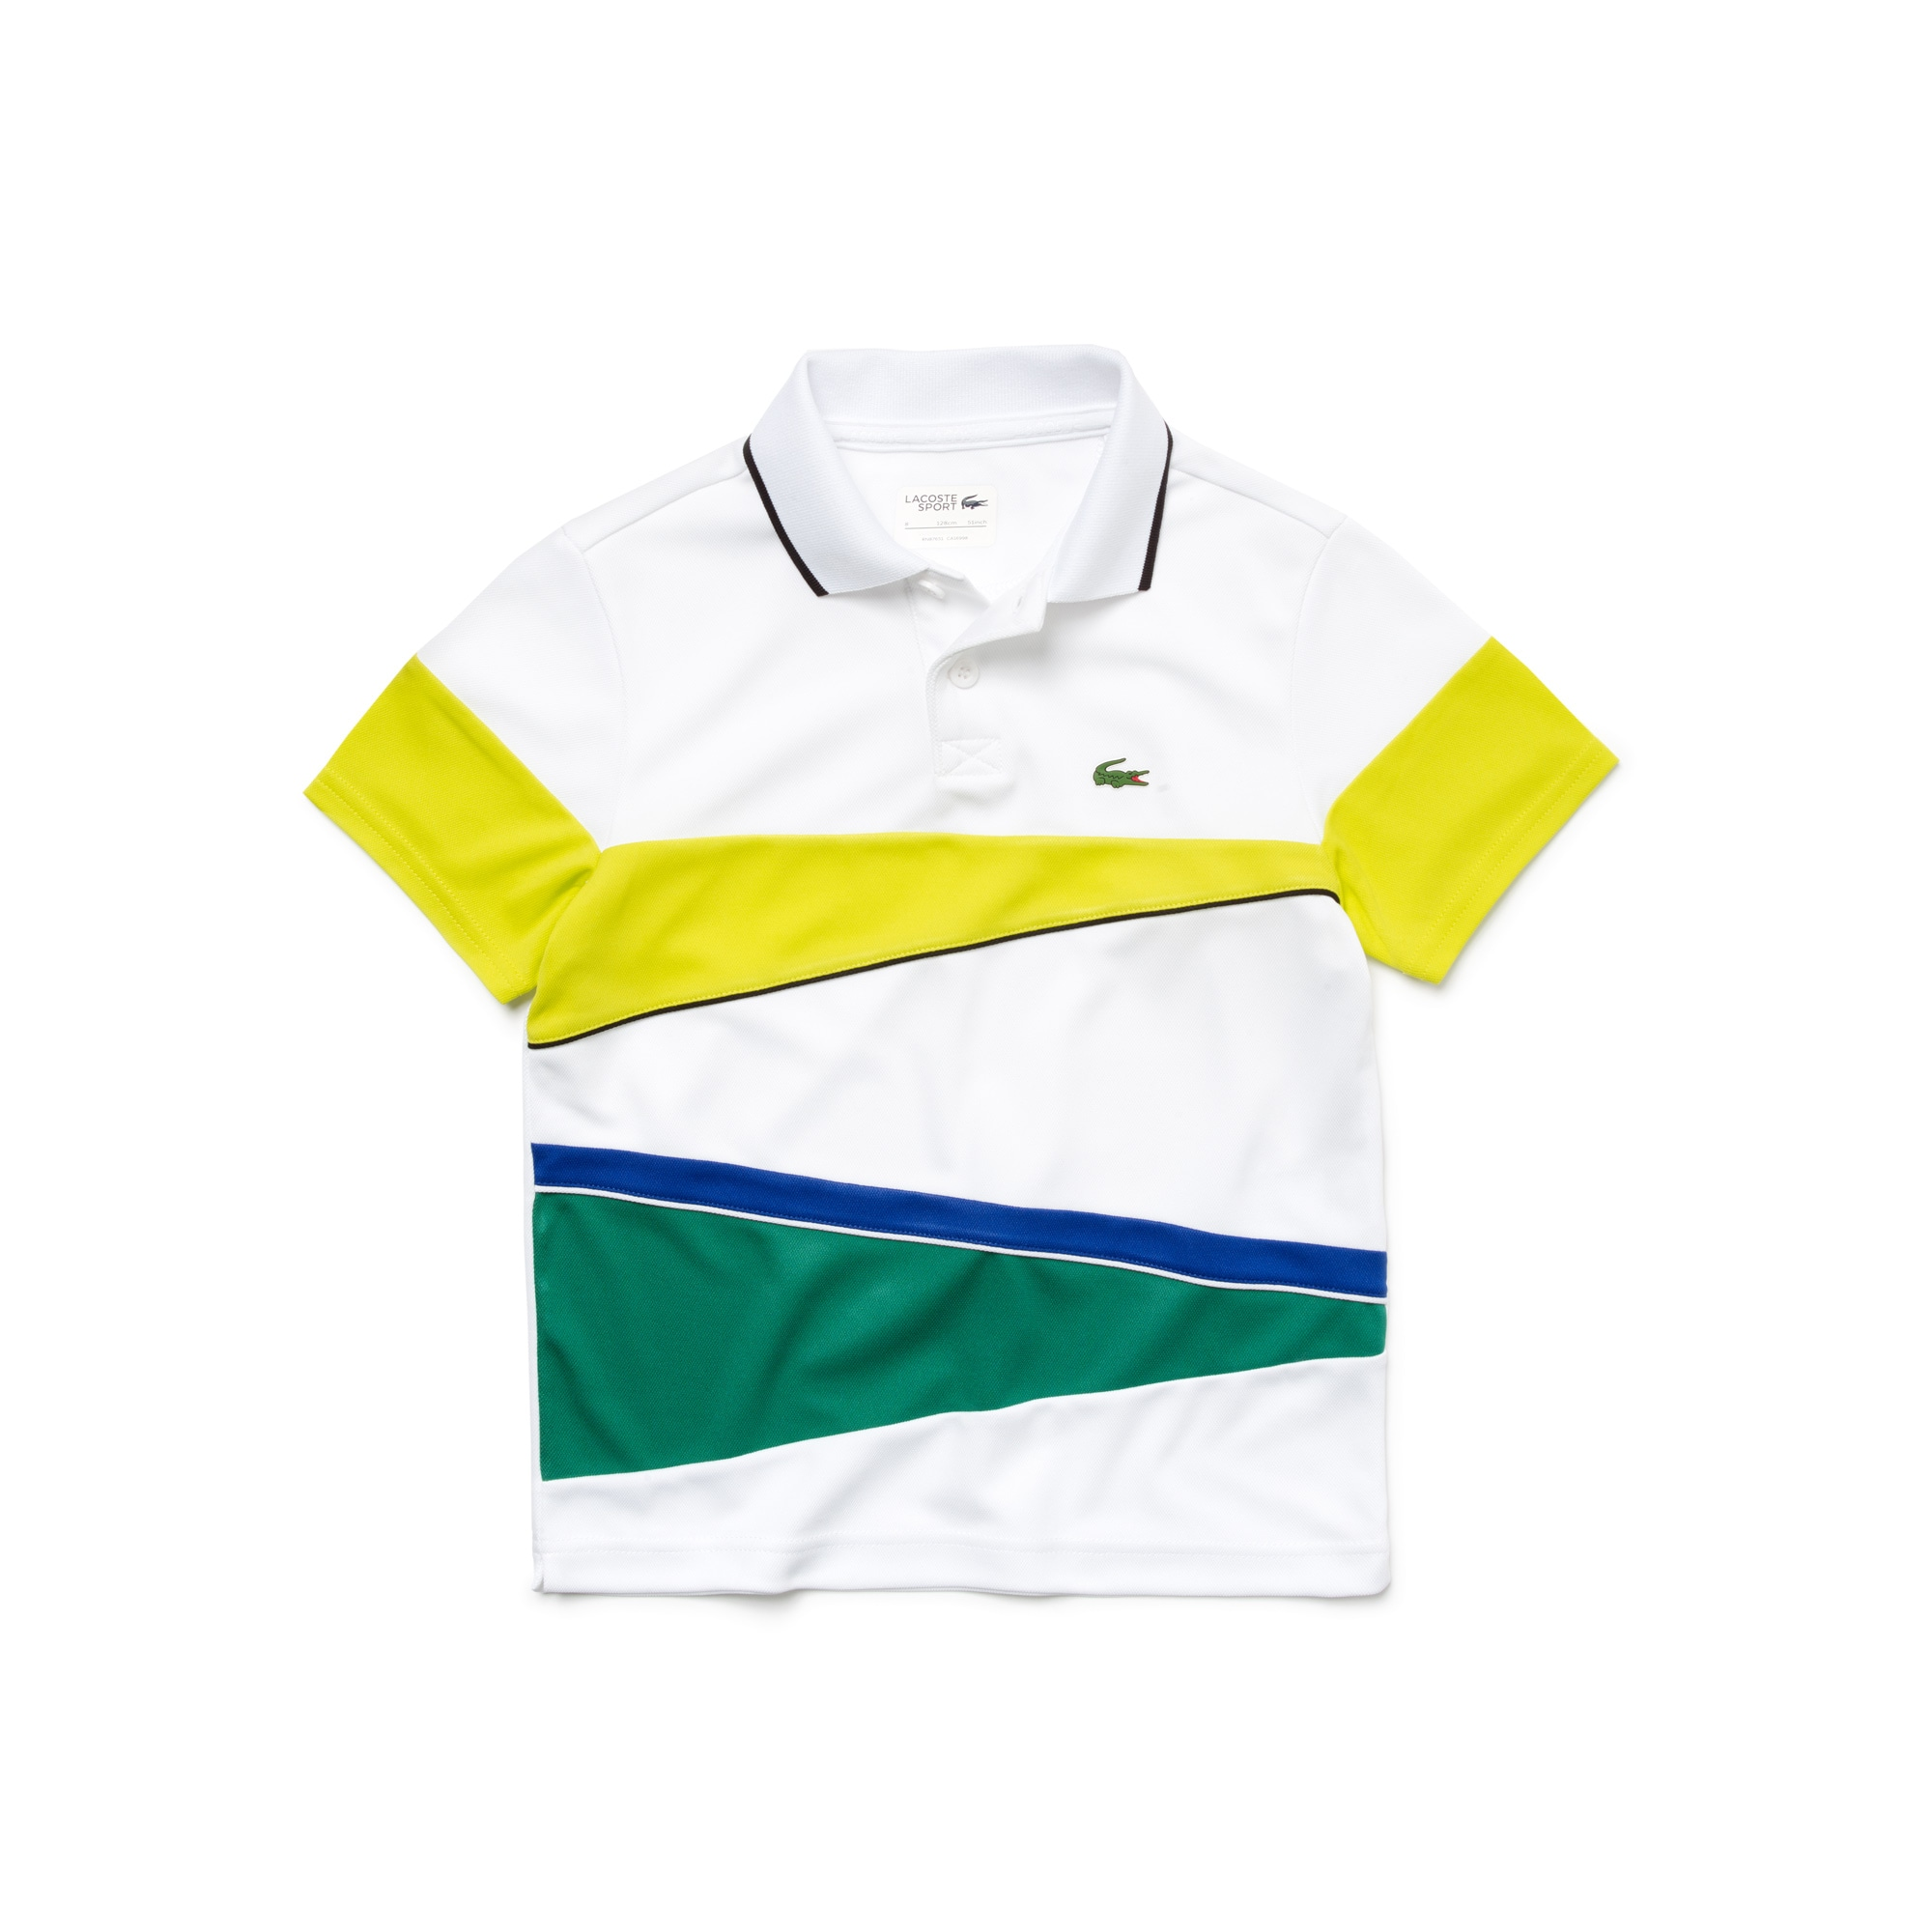 Kids' SPORT Resistant Colorblock Piqué Tennis Polo Shirt